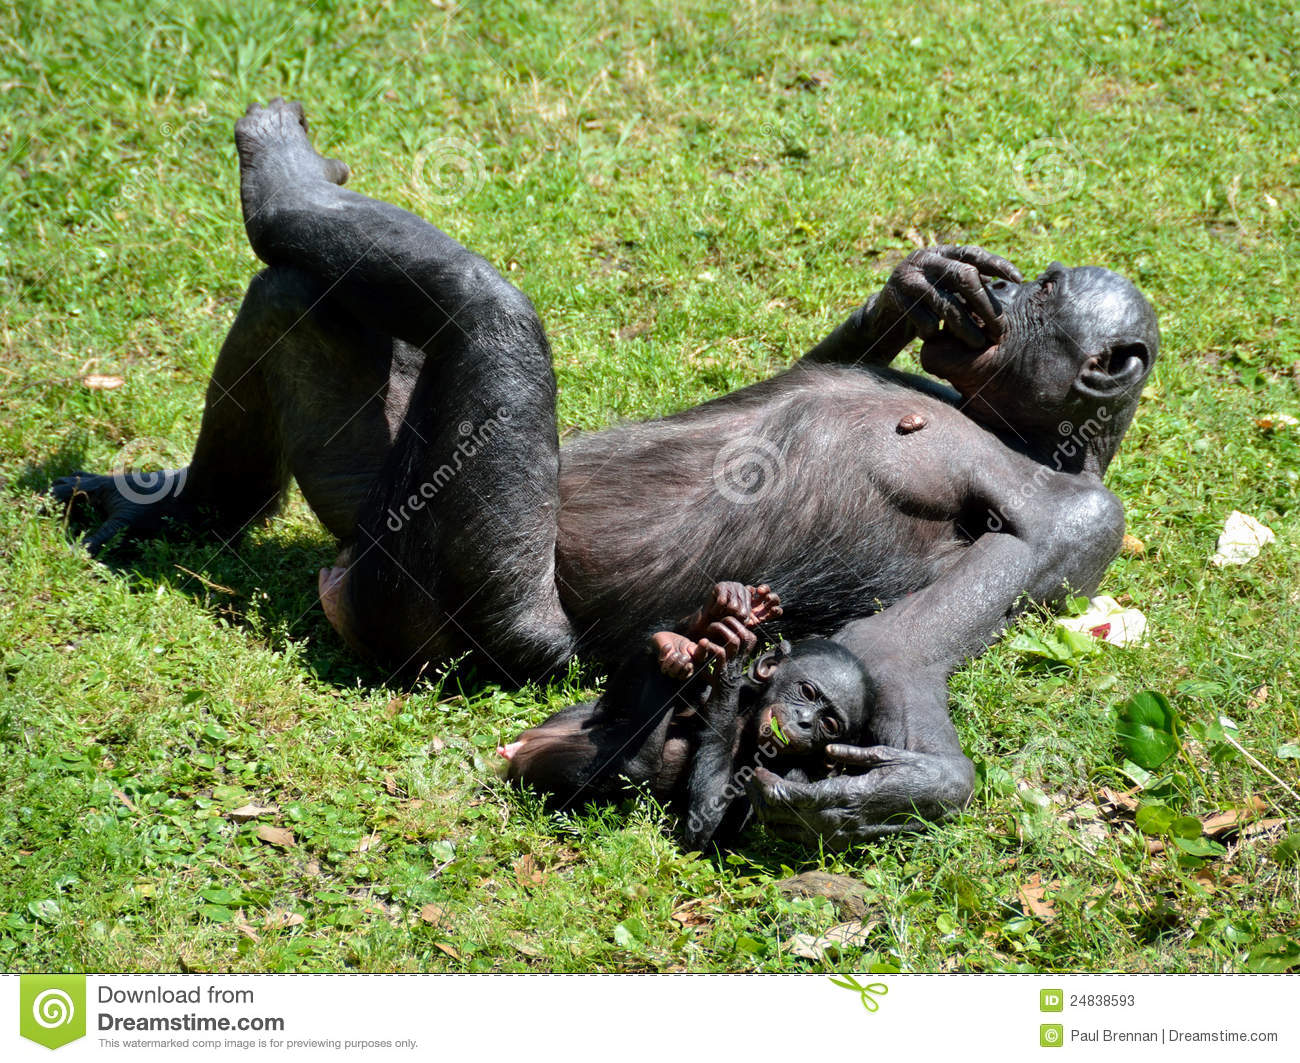 Bonobo Ape With Baby Stock Photos - Image: 24838593 Cute Baby Pointing Finger